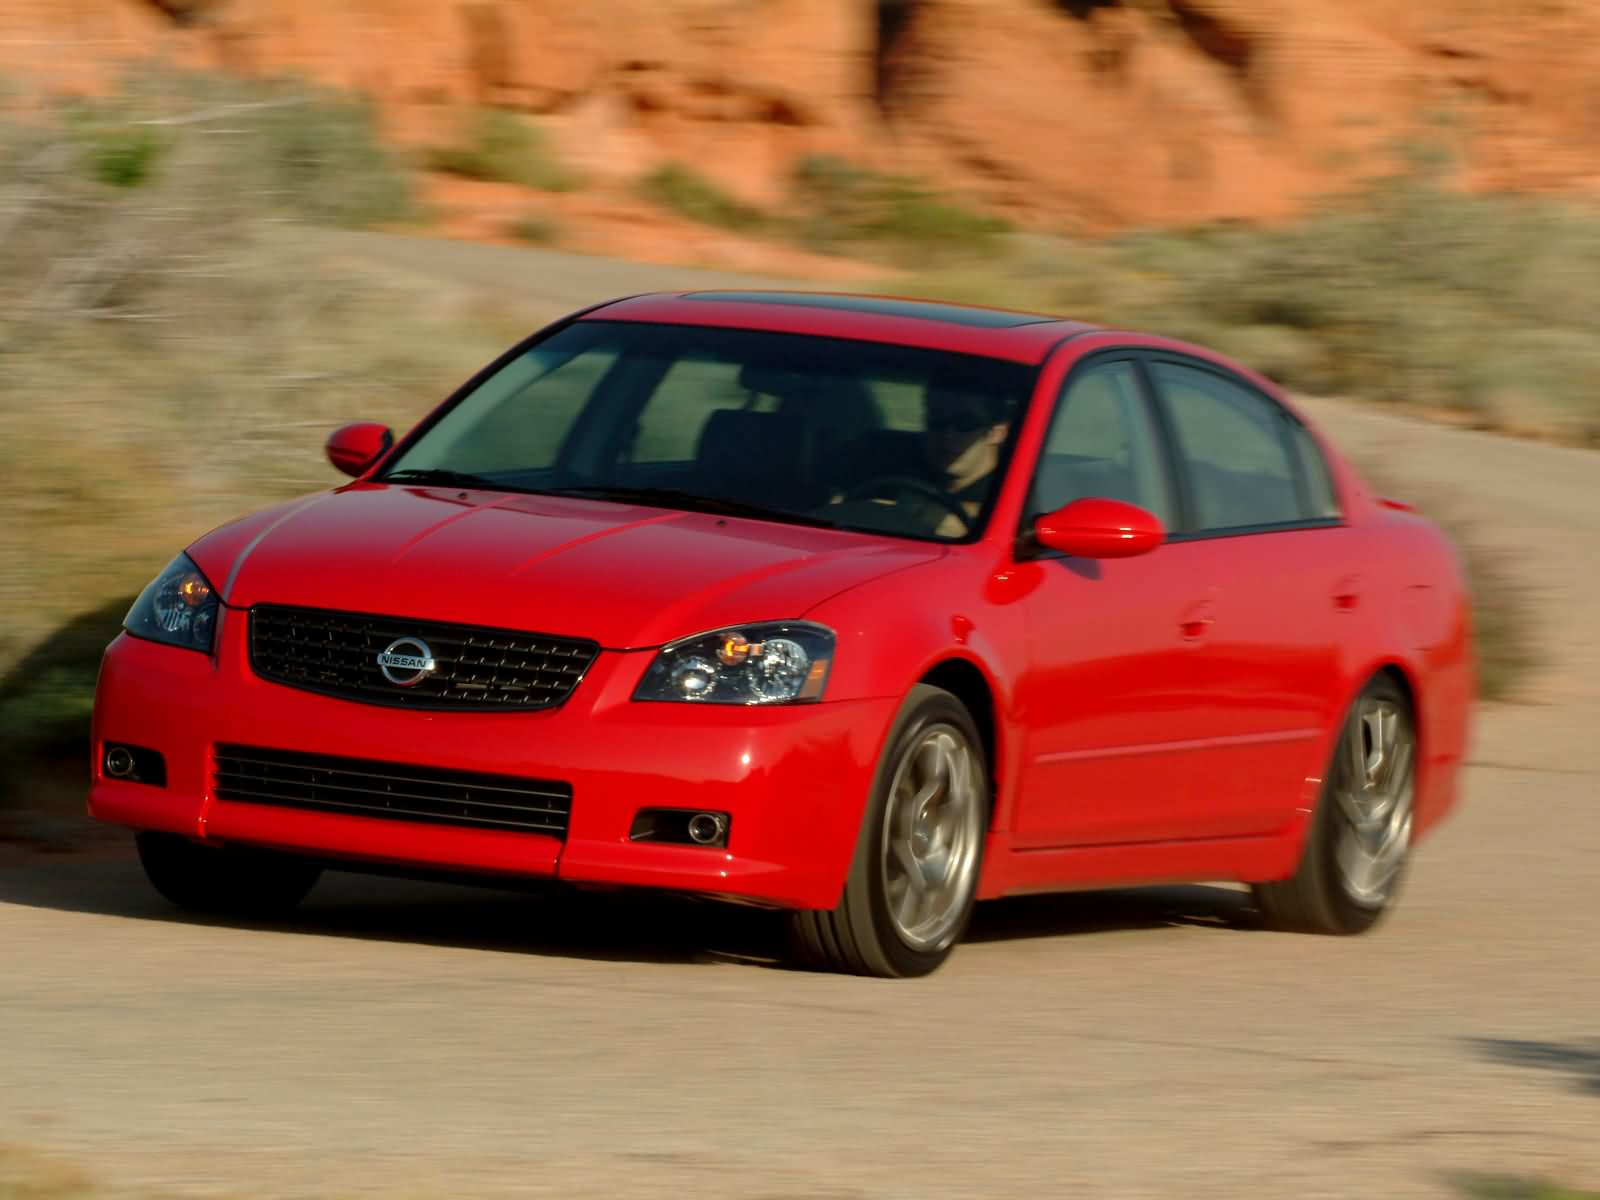 New Nissan Maxima >> NISSAN Altima specs & photos - 2002, 2003, 2004, 2005, 2006 - autoevolution